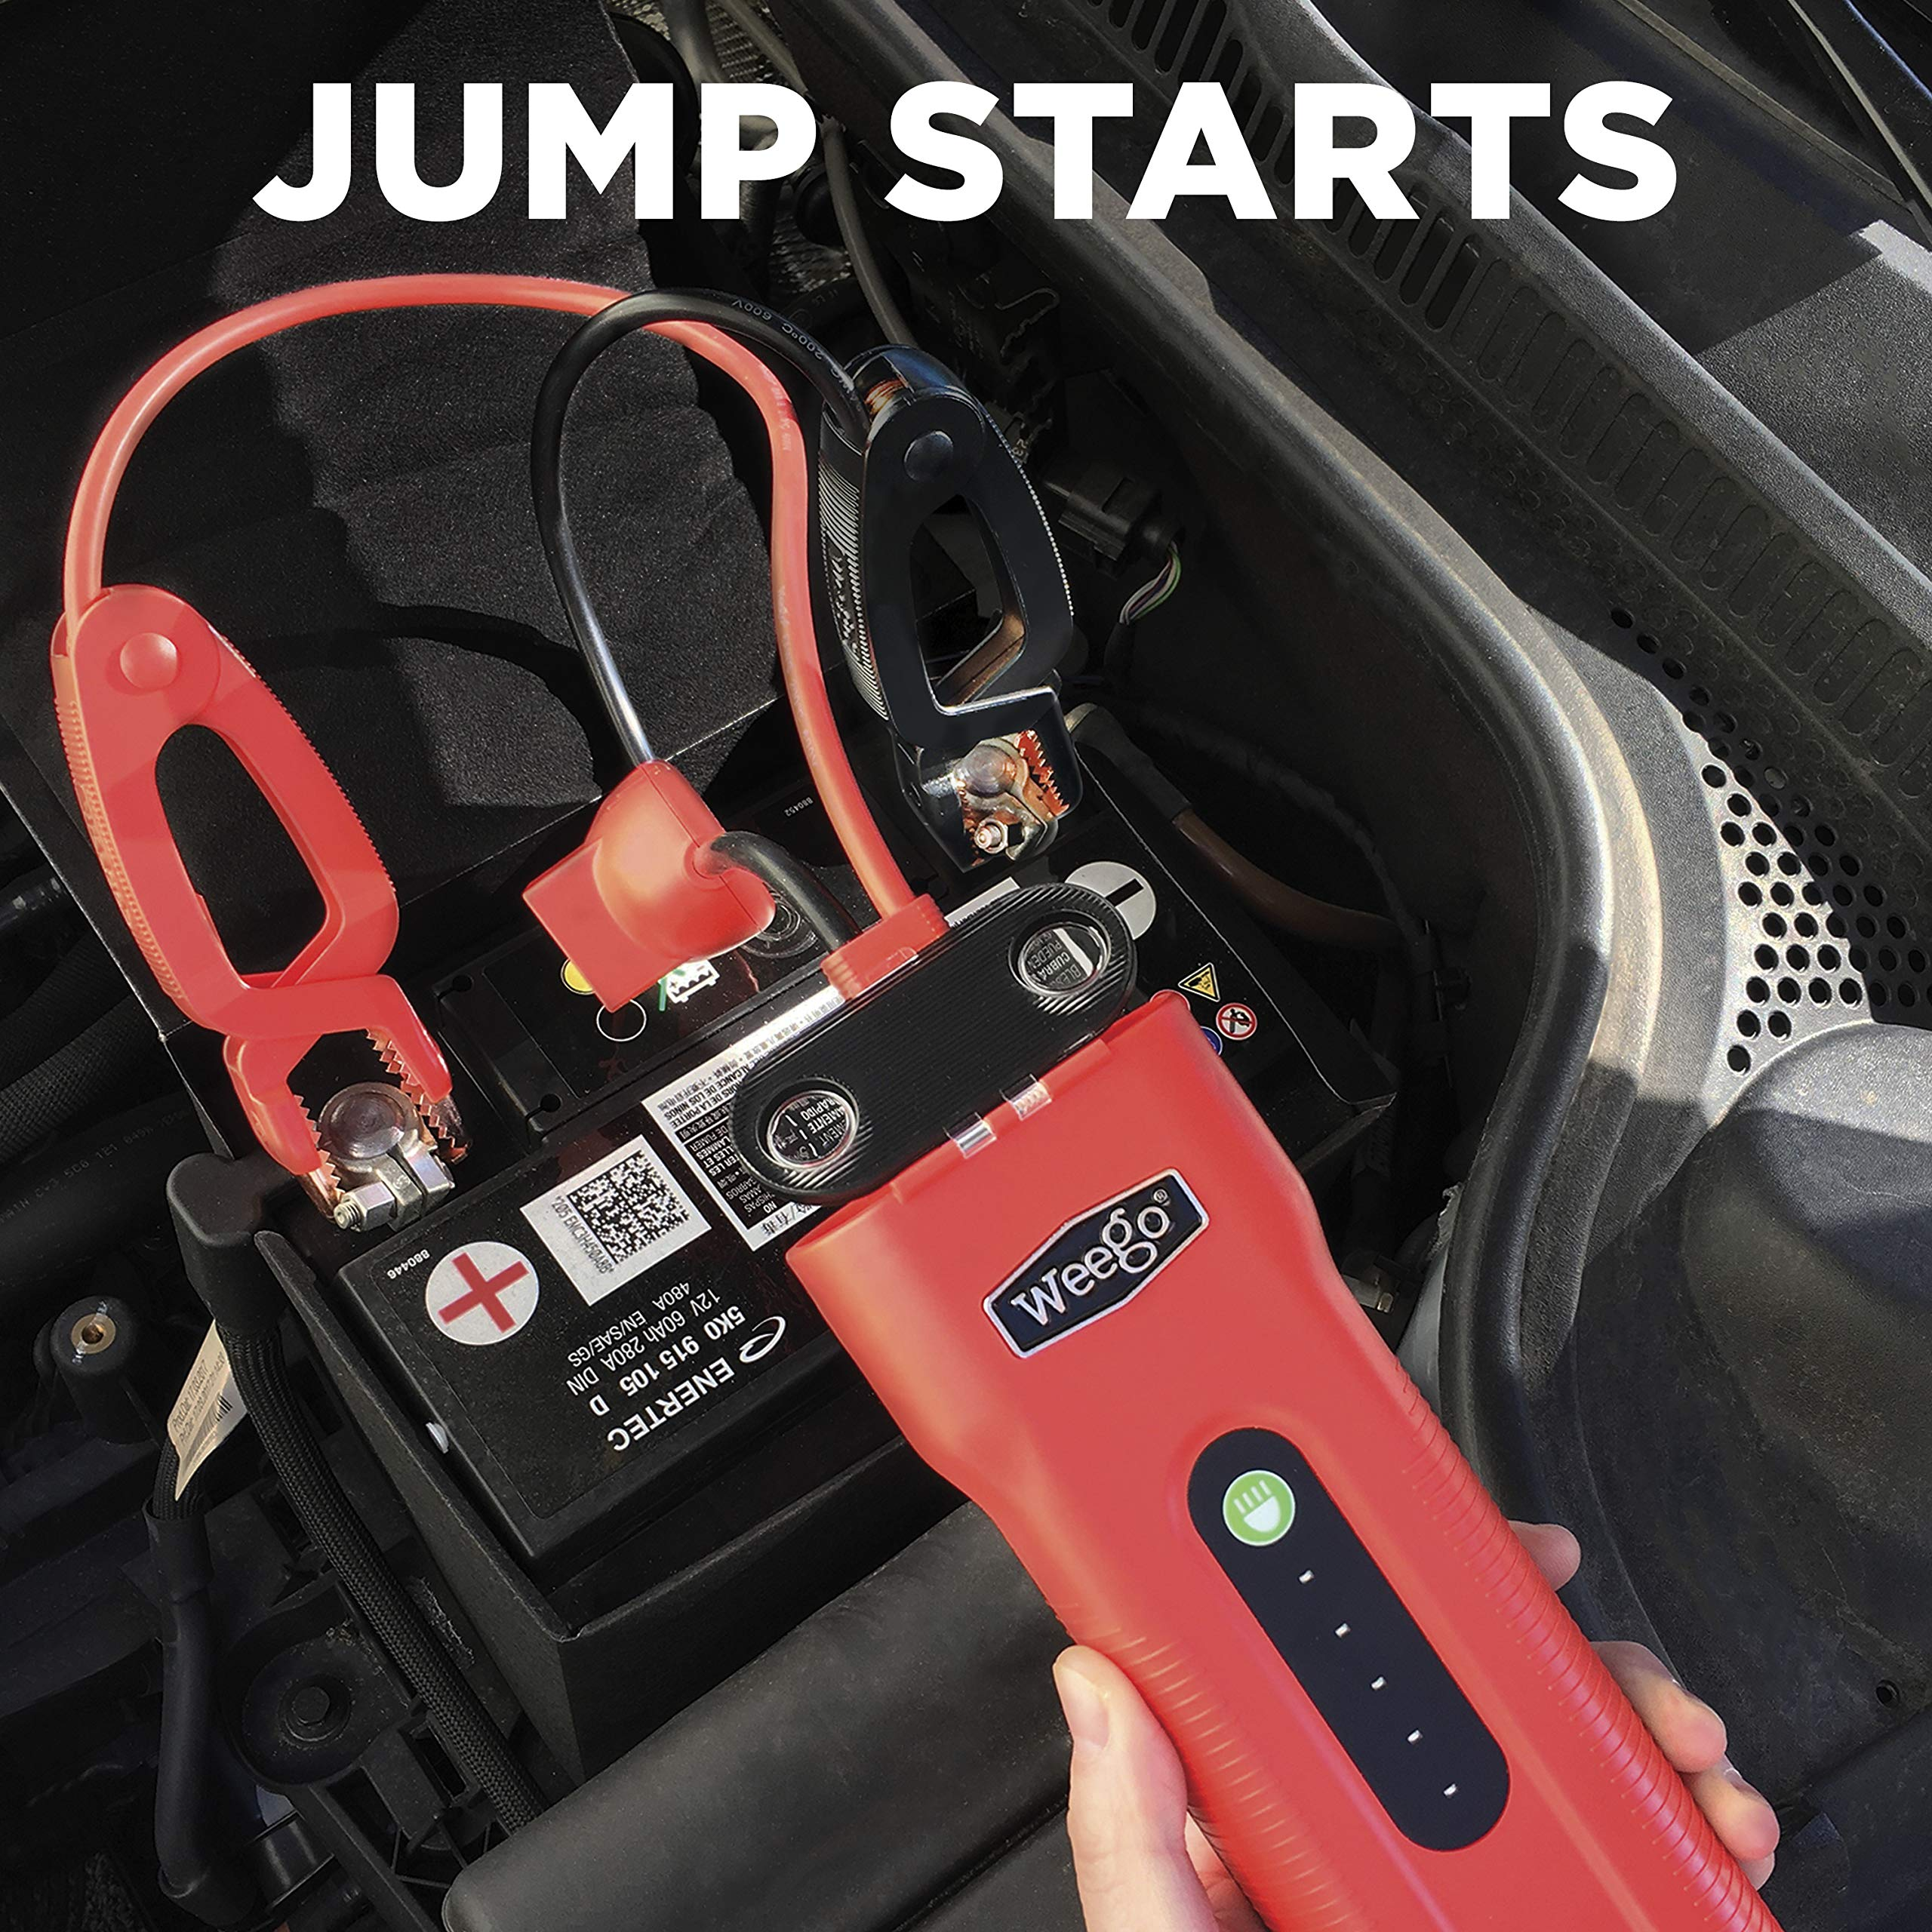 Weego 66.1 Jump Starting Power Pack MEGA BUNDLE includes Weego 66.1 High Performance Lithium Ion Jump Starter (New 2019 Model) plus Weego 12V DC Adapter, Weego SAE Adapter and Weego OBDII Memory Saver by Weego (Image #2)